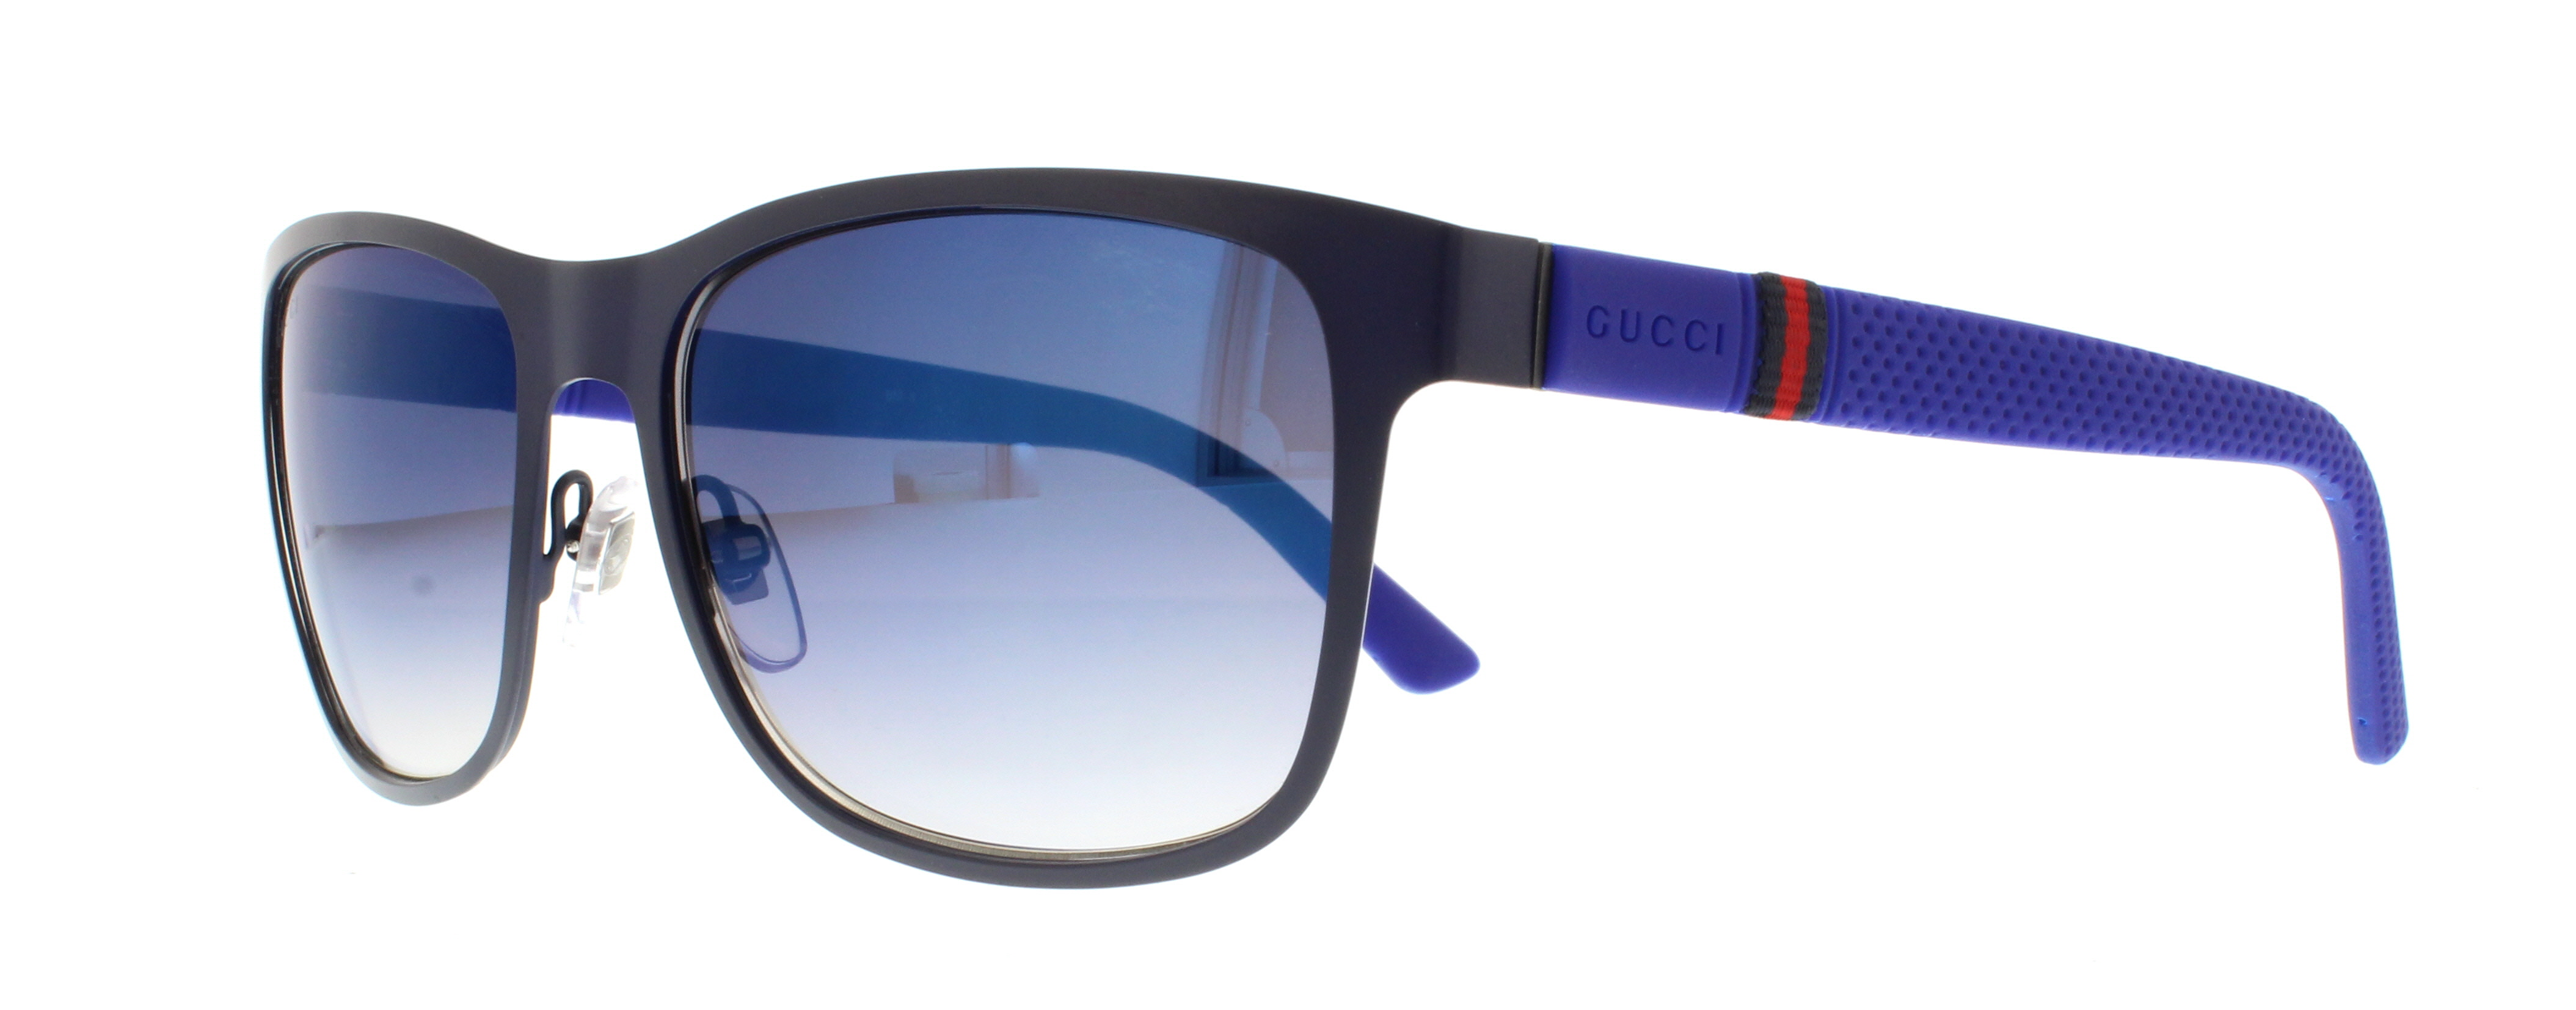 Designer Frames Outlet Gucci S - Free cleaning invoice template gucci outlet store online